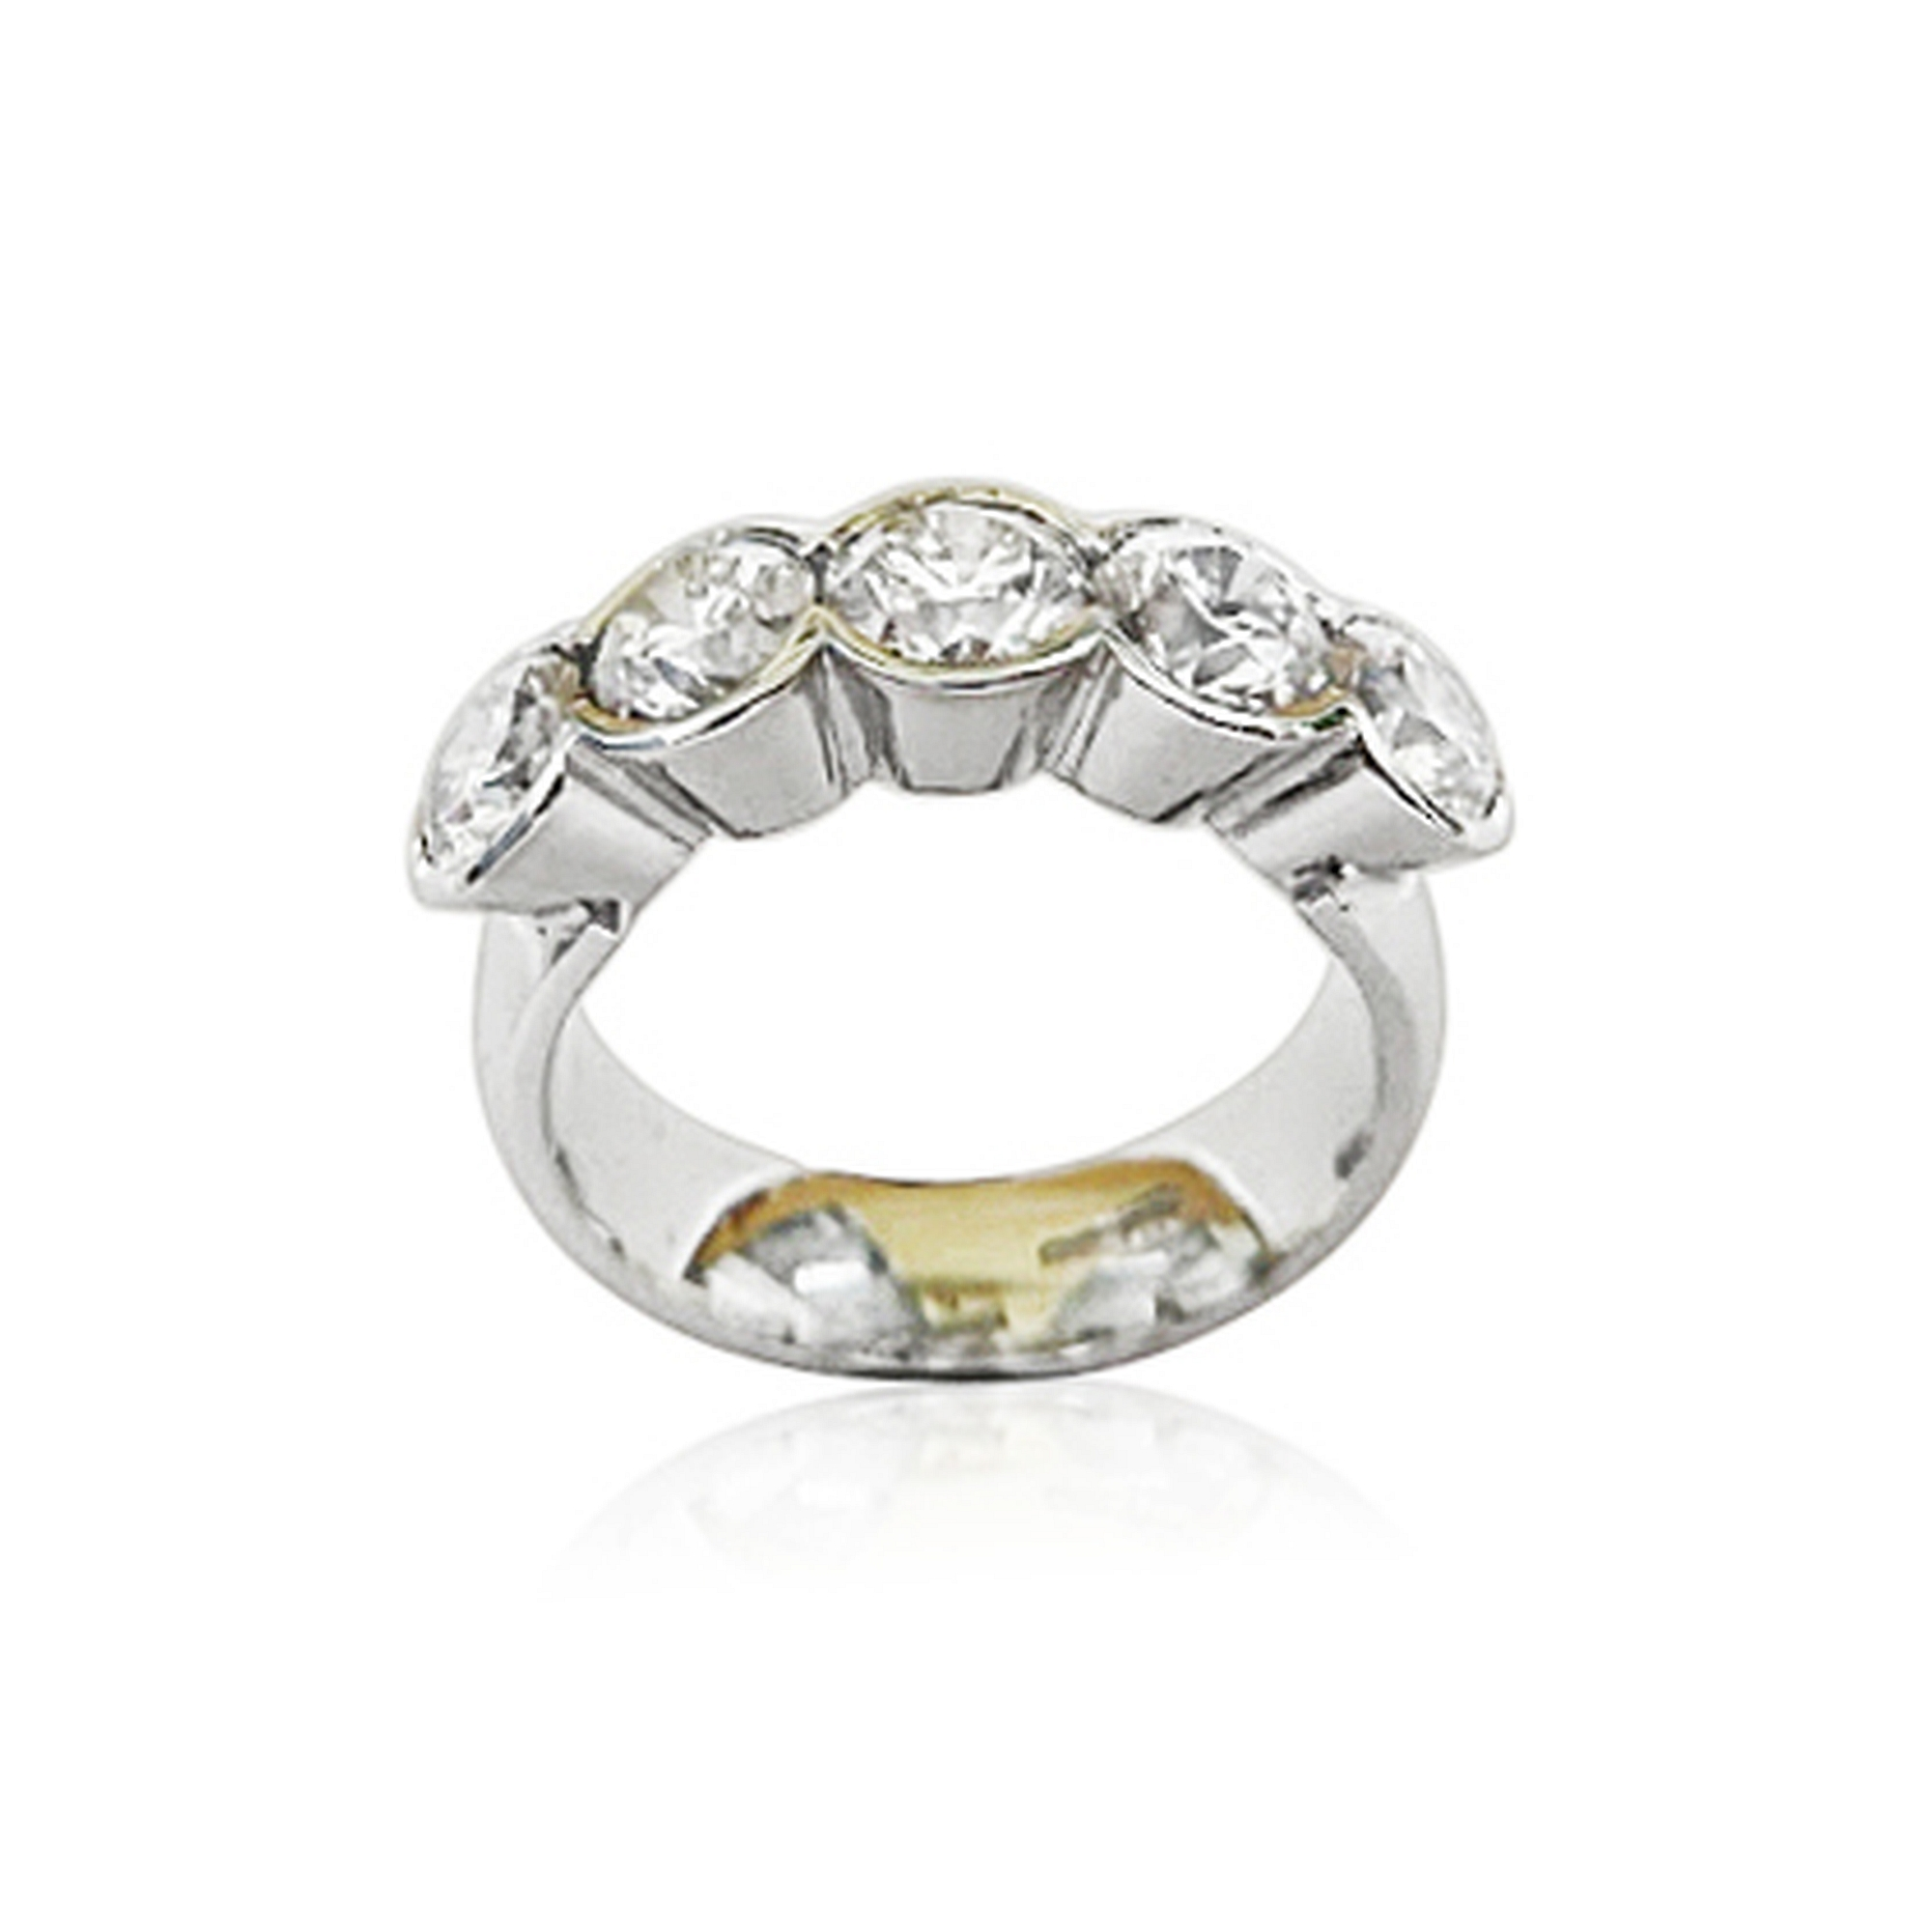 2.5ct F colour vvs round brilliant cut diamonds in 18ct white gold clients own stones all certified stones a handful of bling right there.